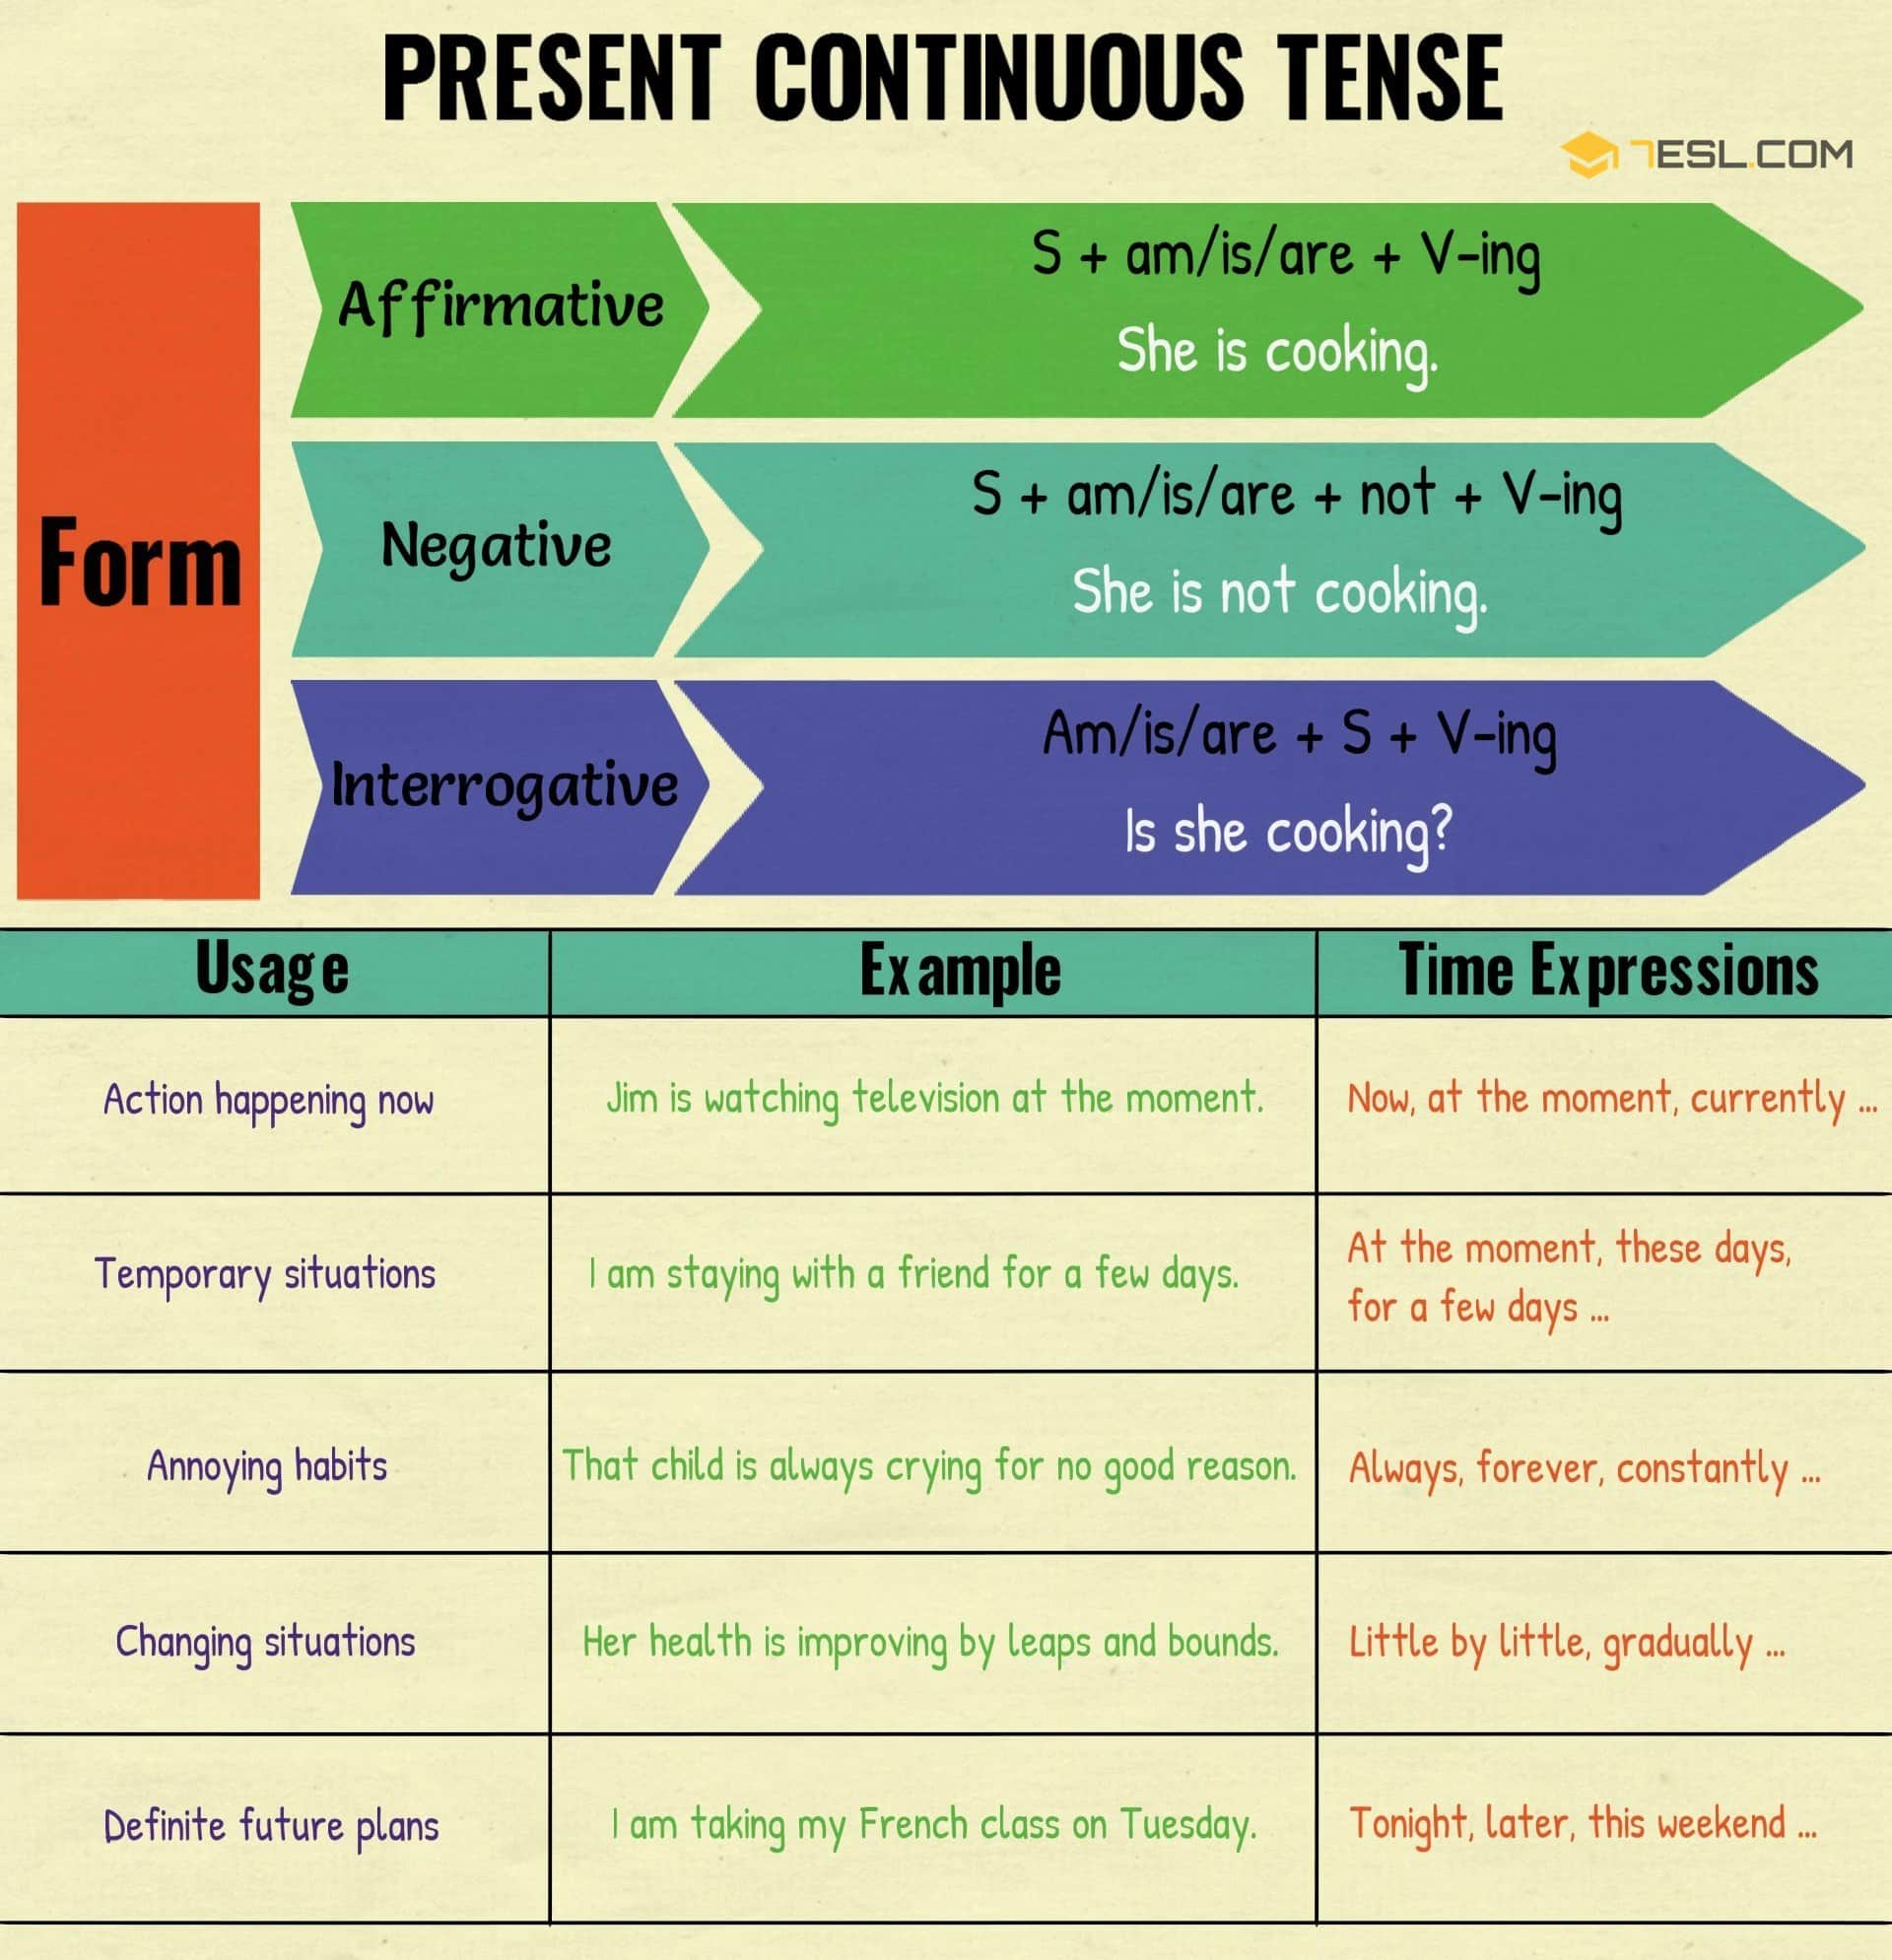 Present Continuous Tense | Rules and Examples